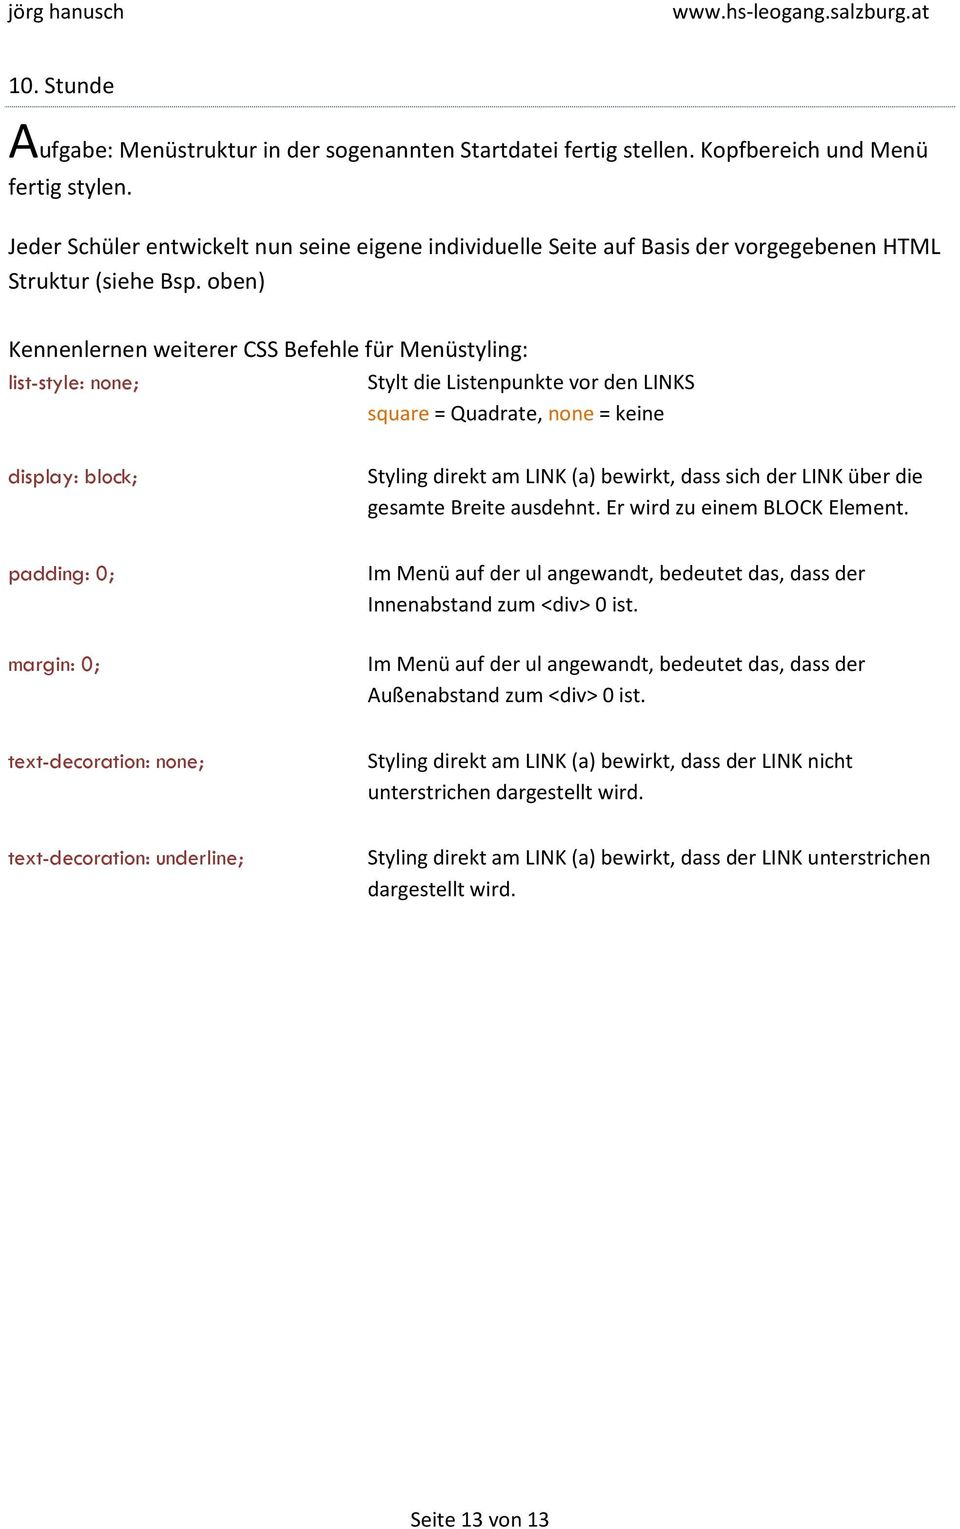 oben) Kennenlernen weiterer CSS Befehle für Menüstyling: list-style: none; Stylt die Listenpunkte vor den LINKS square = Quadrate, none = keine display: block; Styling direkt am LINK (a) bewirkt,